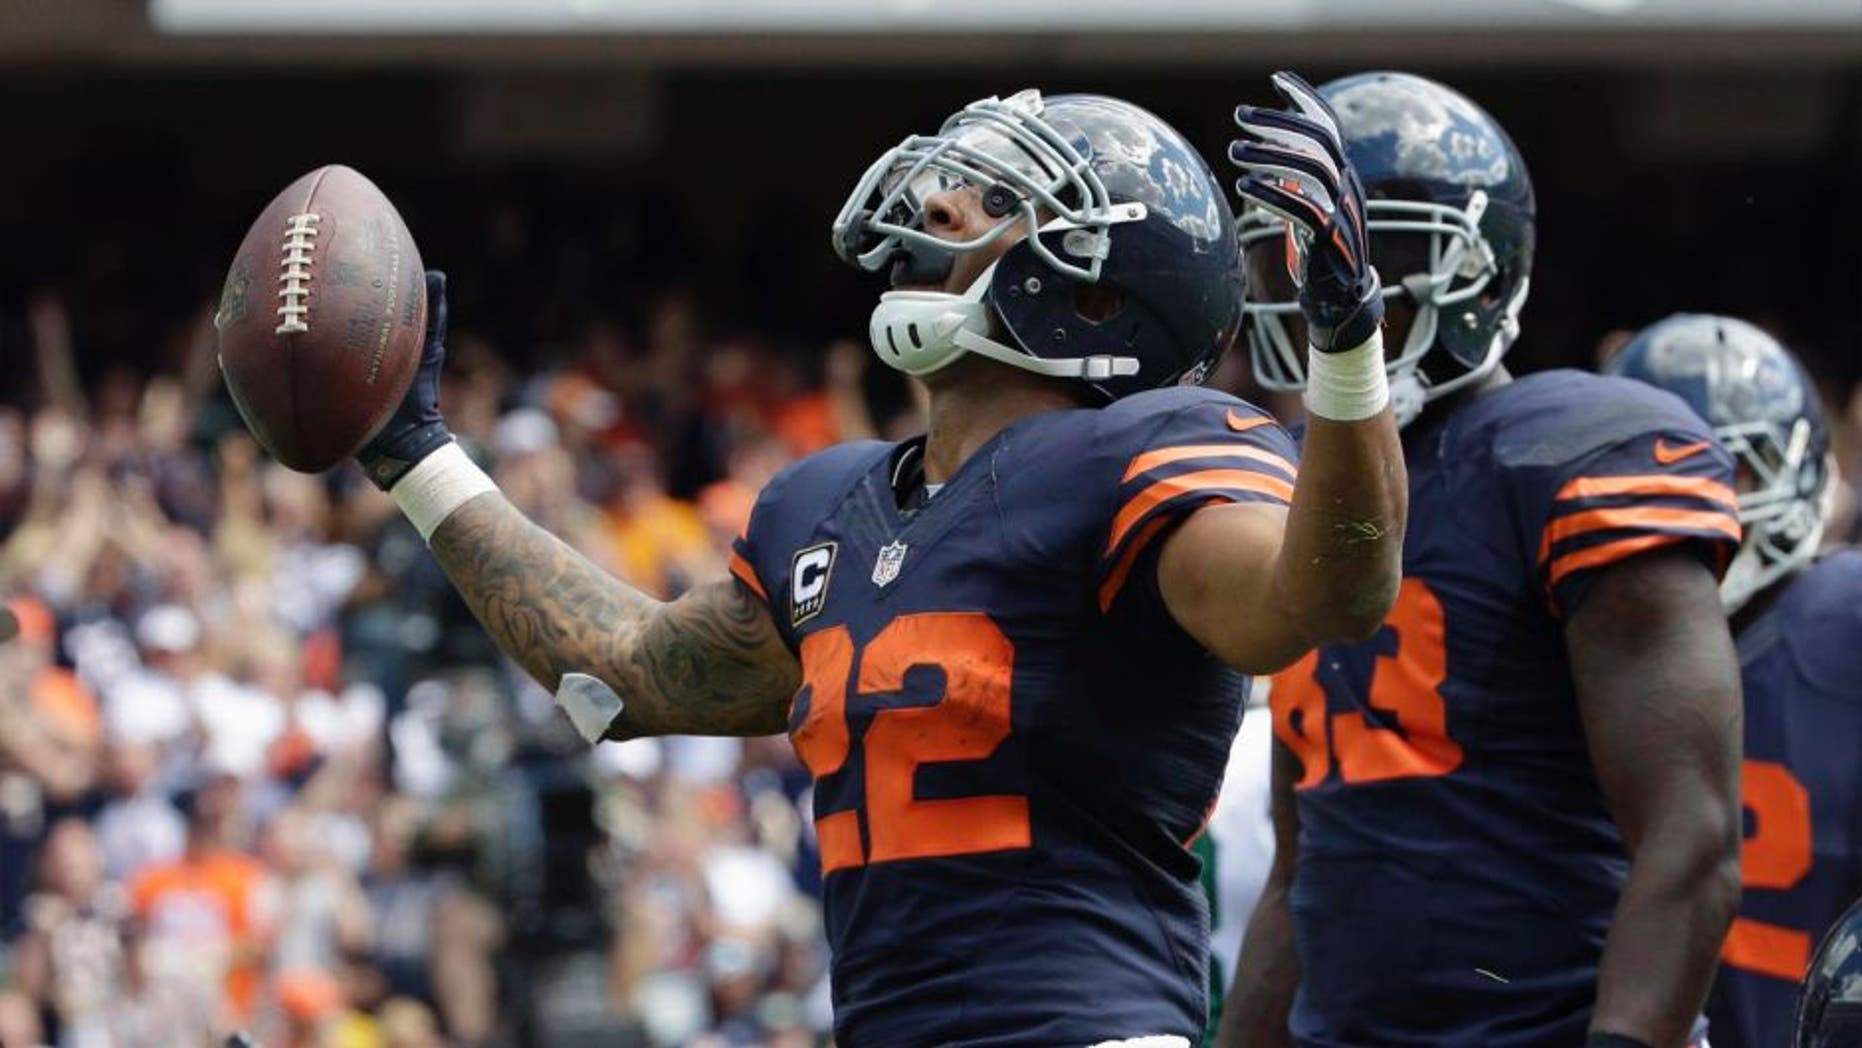 Chicago Bears running back Matt Forte celebrates a touchdown during the first half of an NFL football game against the Green Bay Packers, Sunday, Sept. 13, 2015, in Chicago.